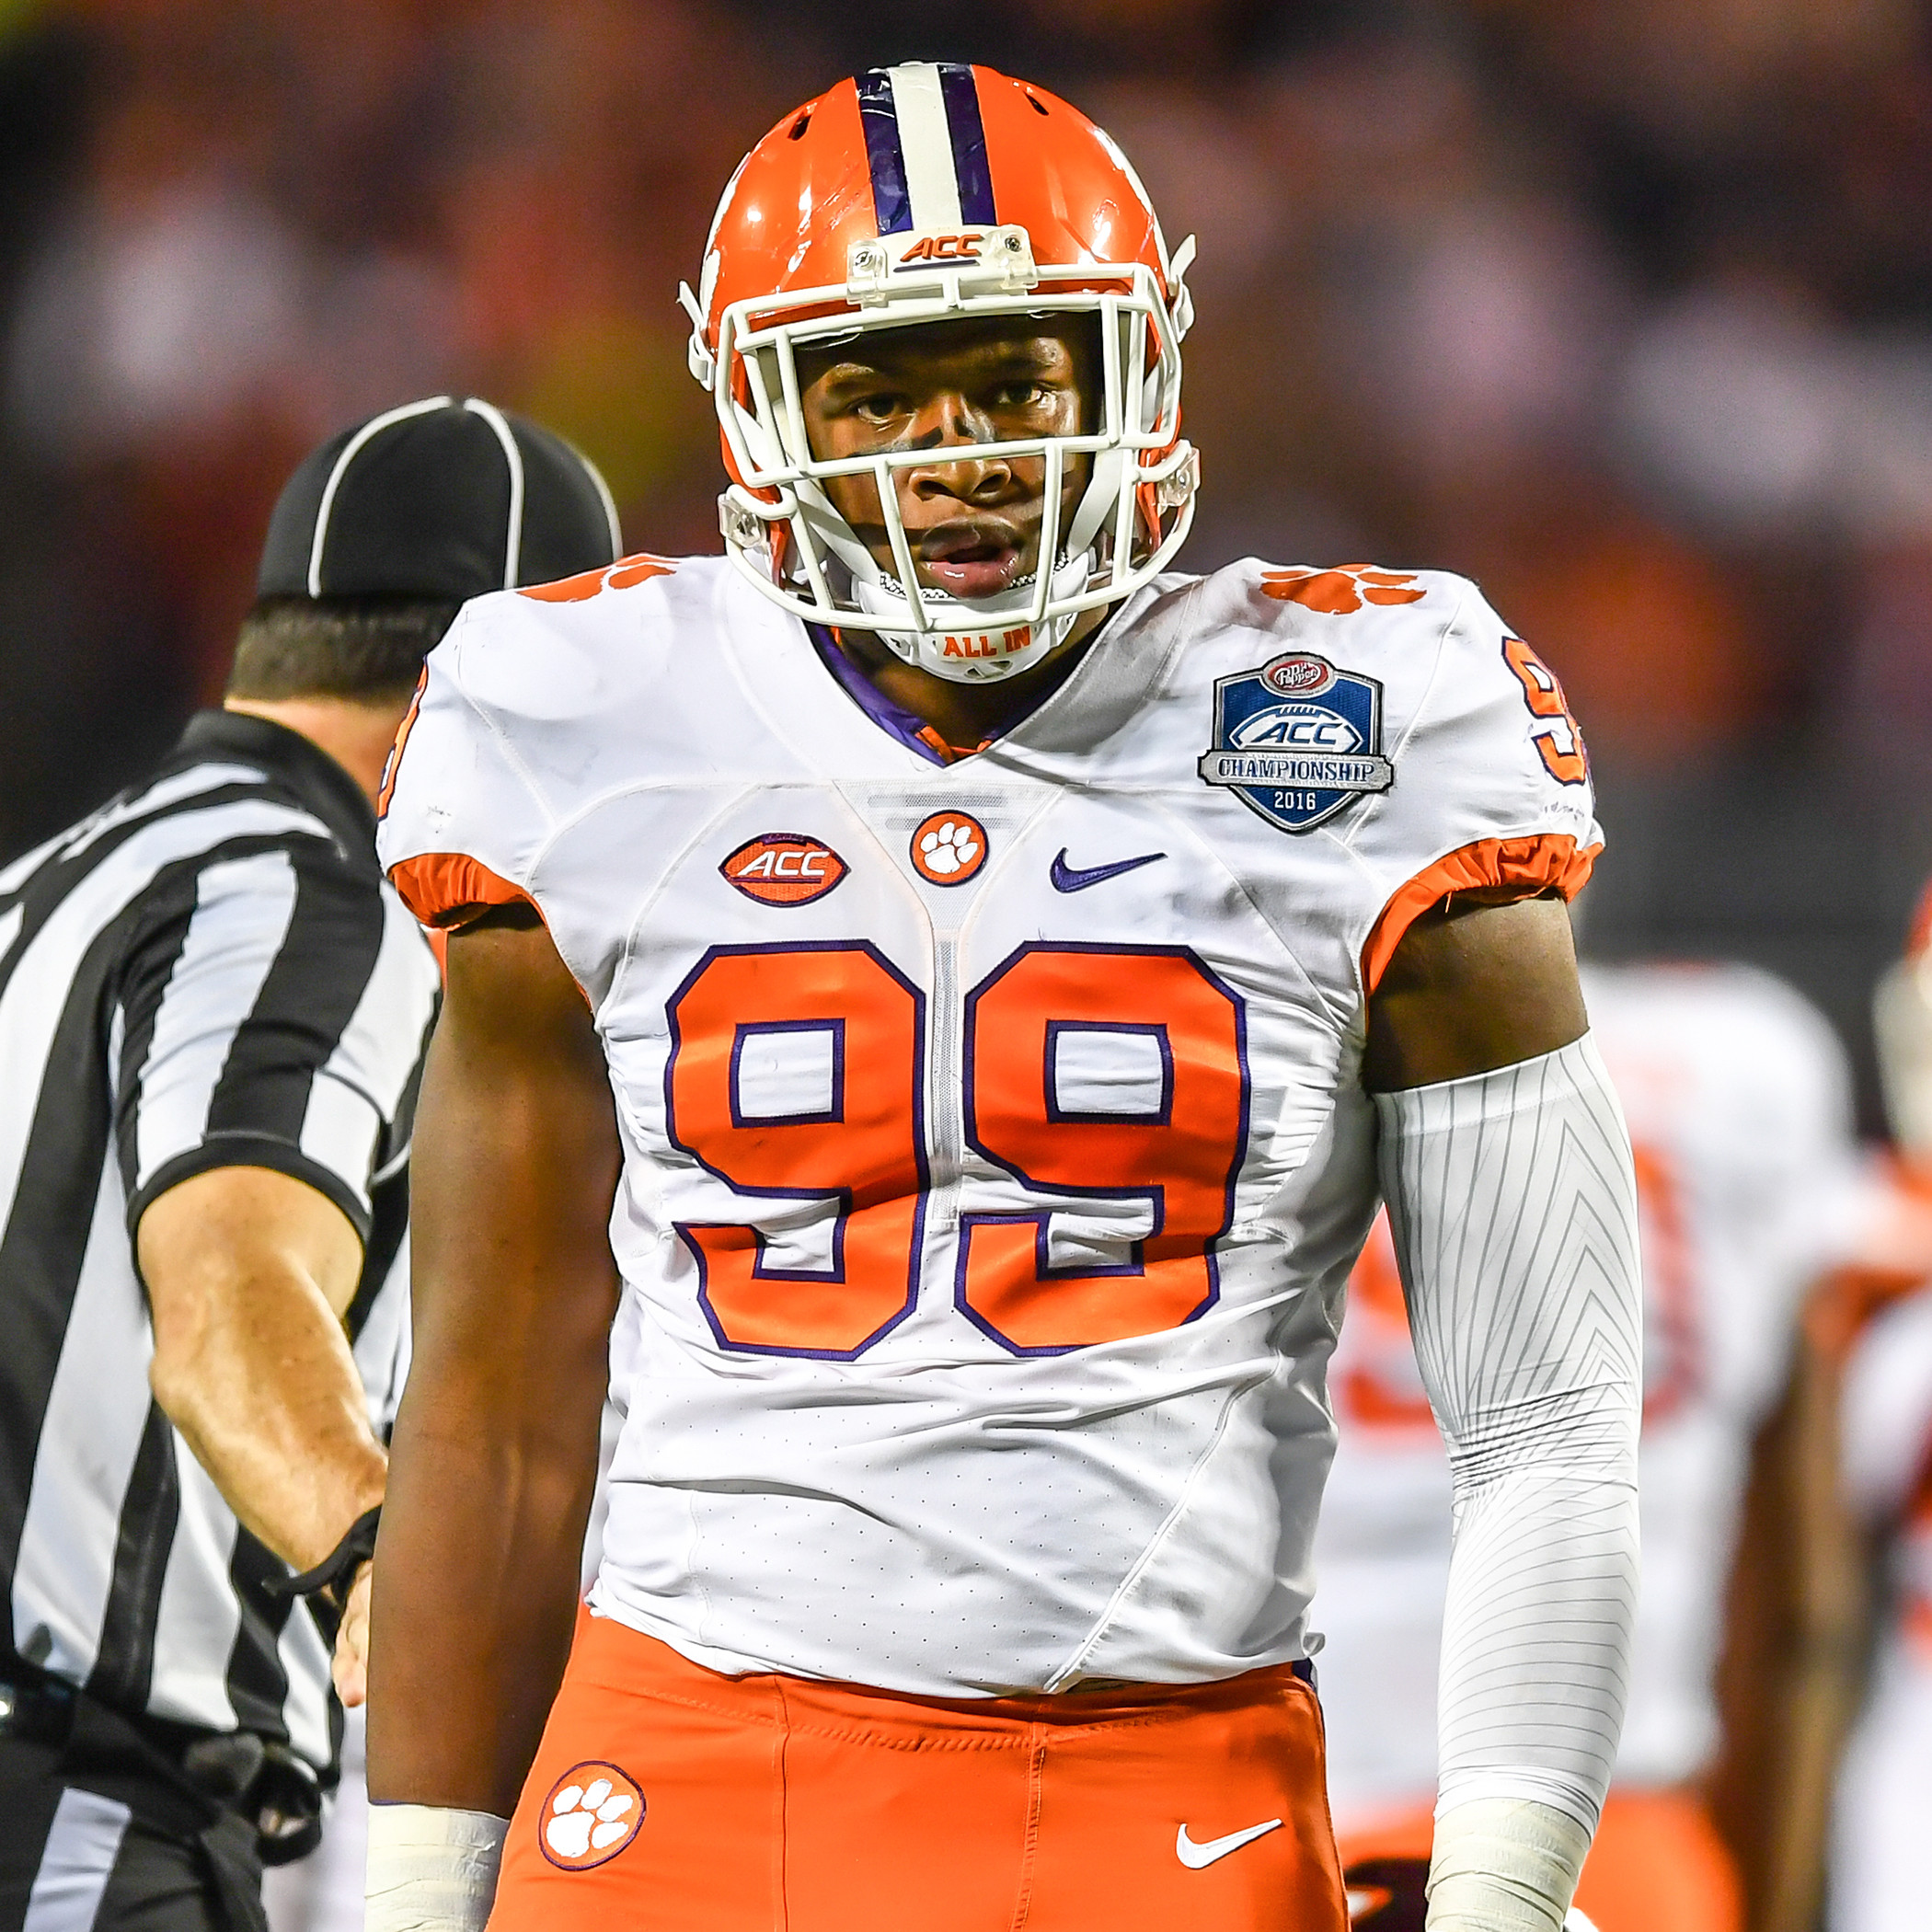 Ferrell Named ACC Defensive Lineman of the Week